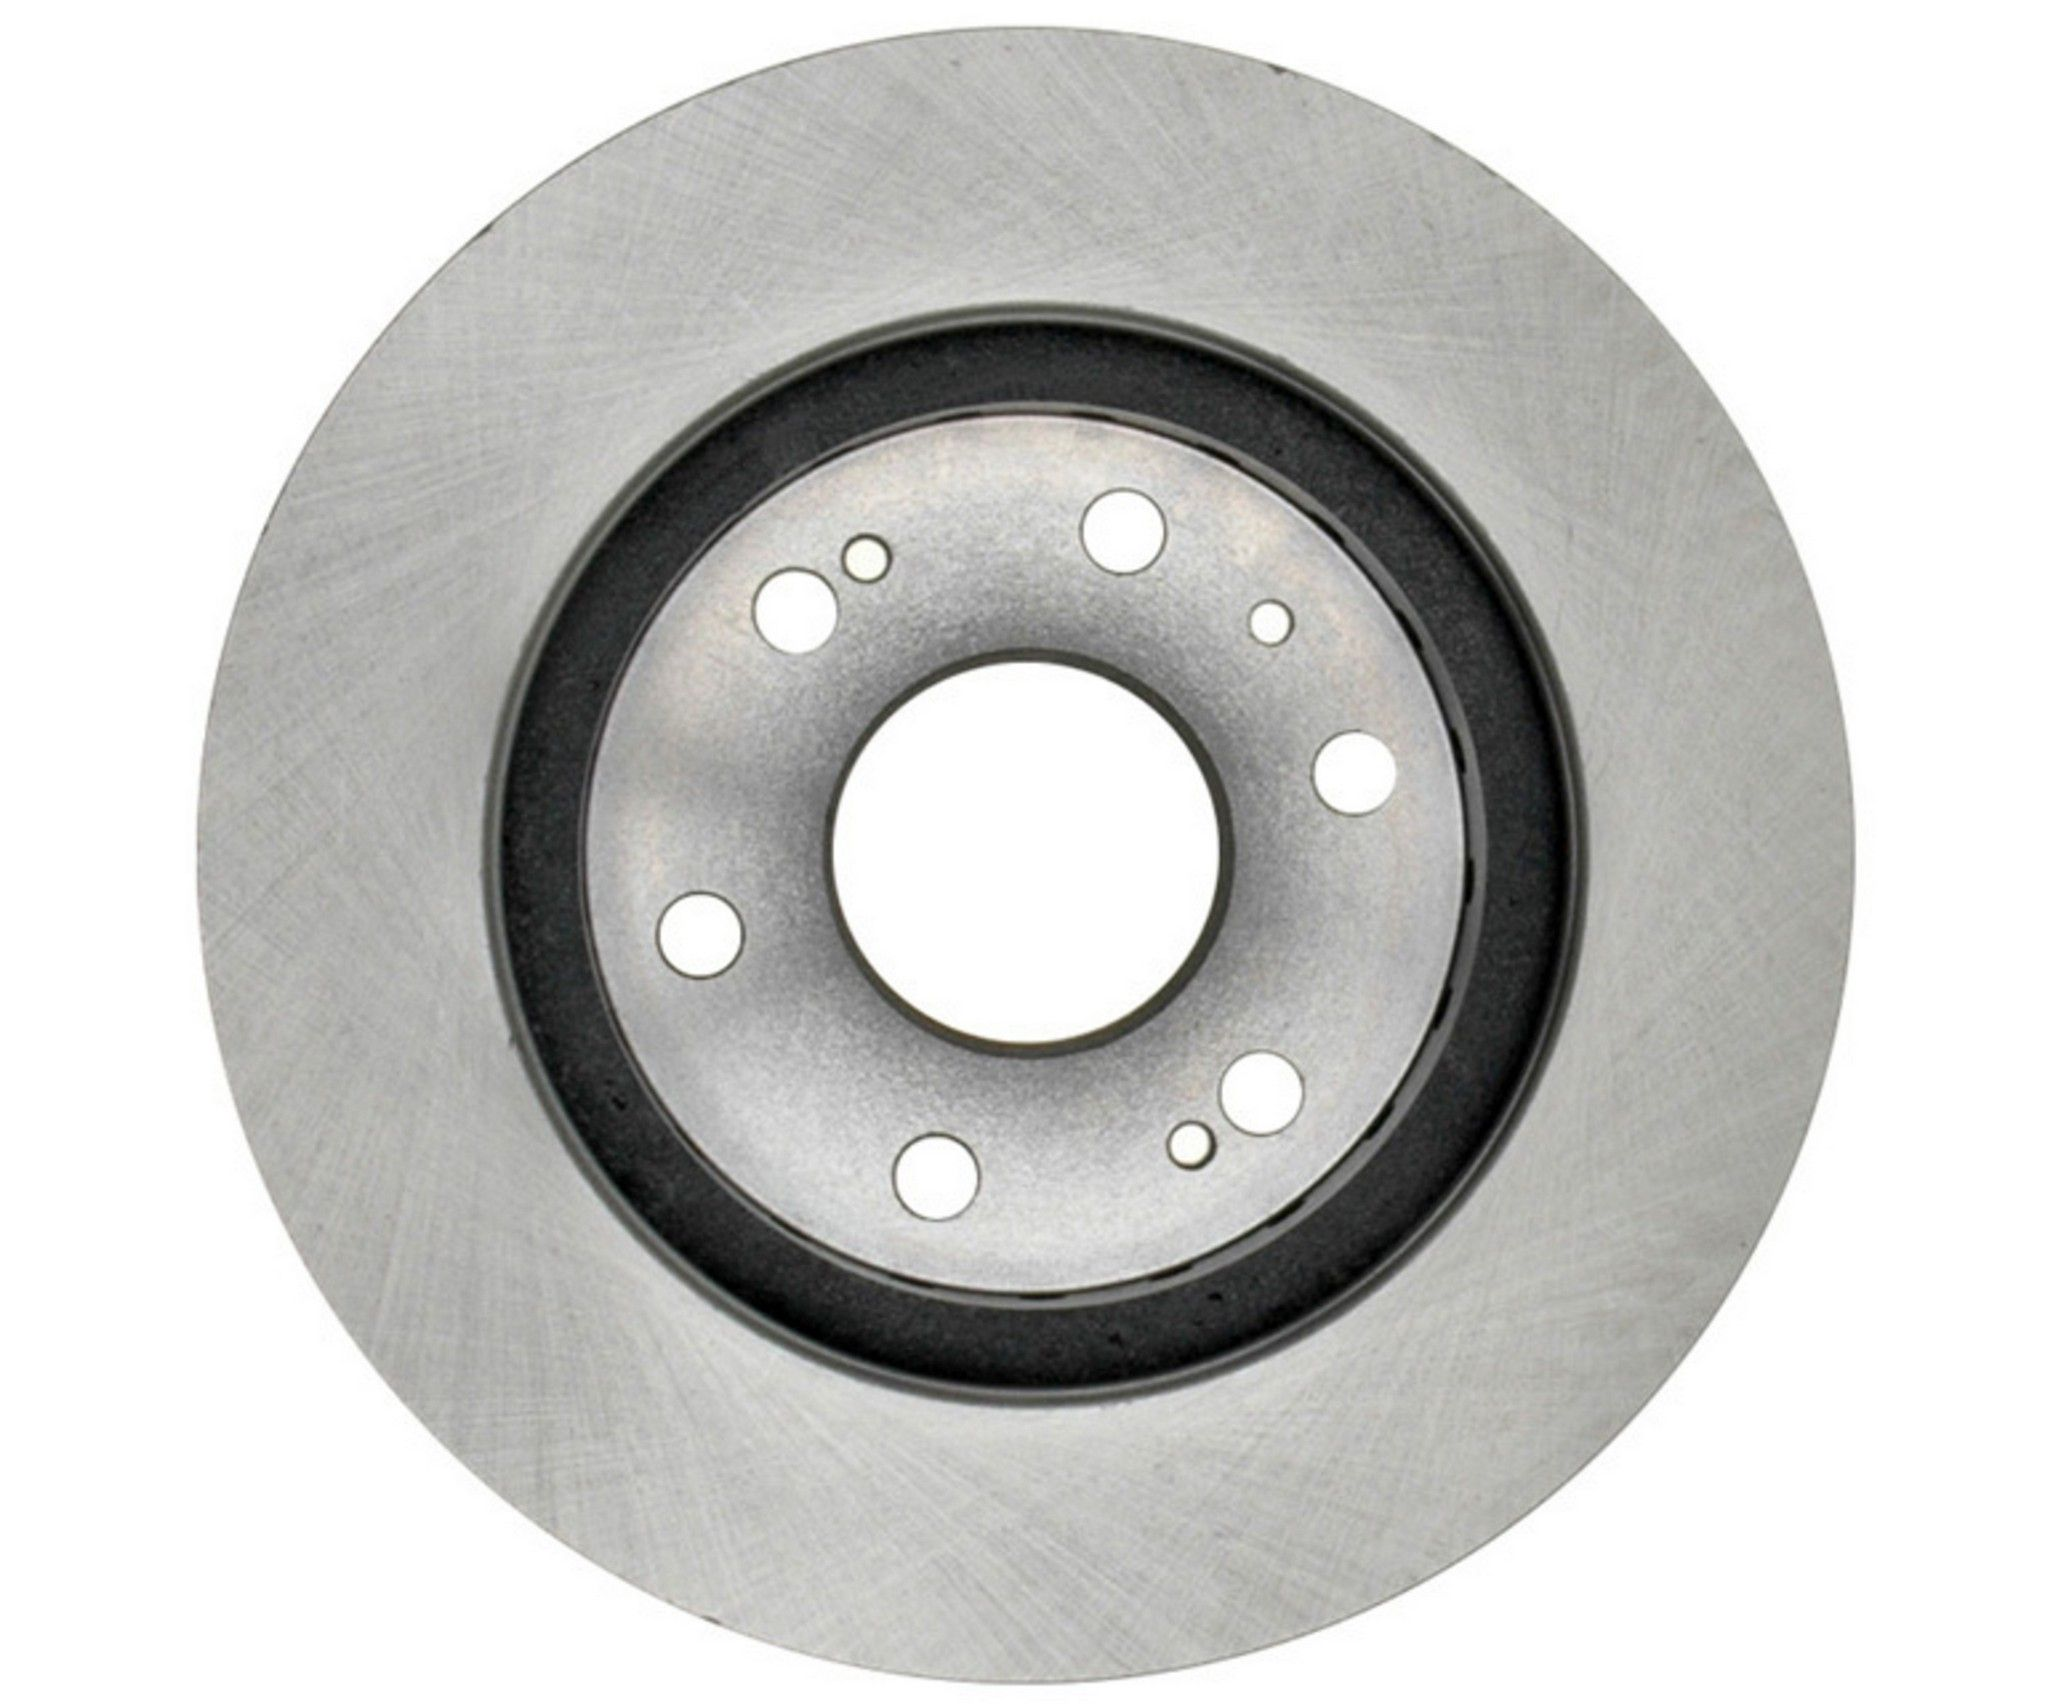 Chevrolet Tahoe Disc Brake Rotor Replacement (ACDelco, ATE